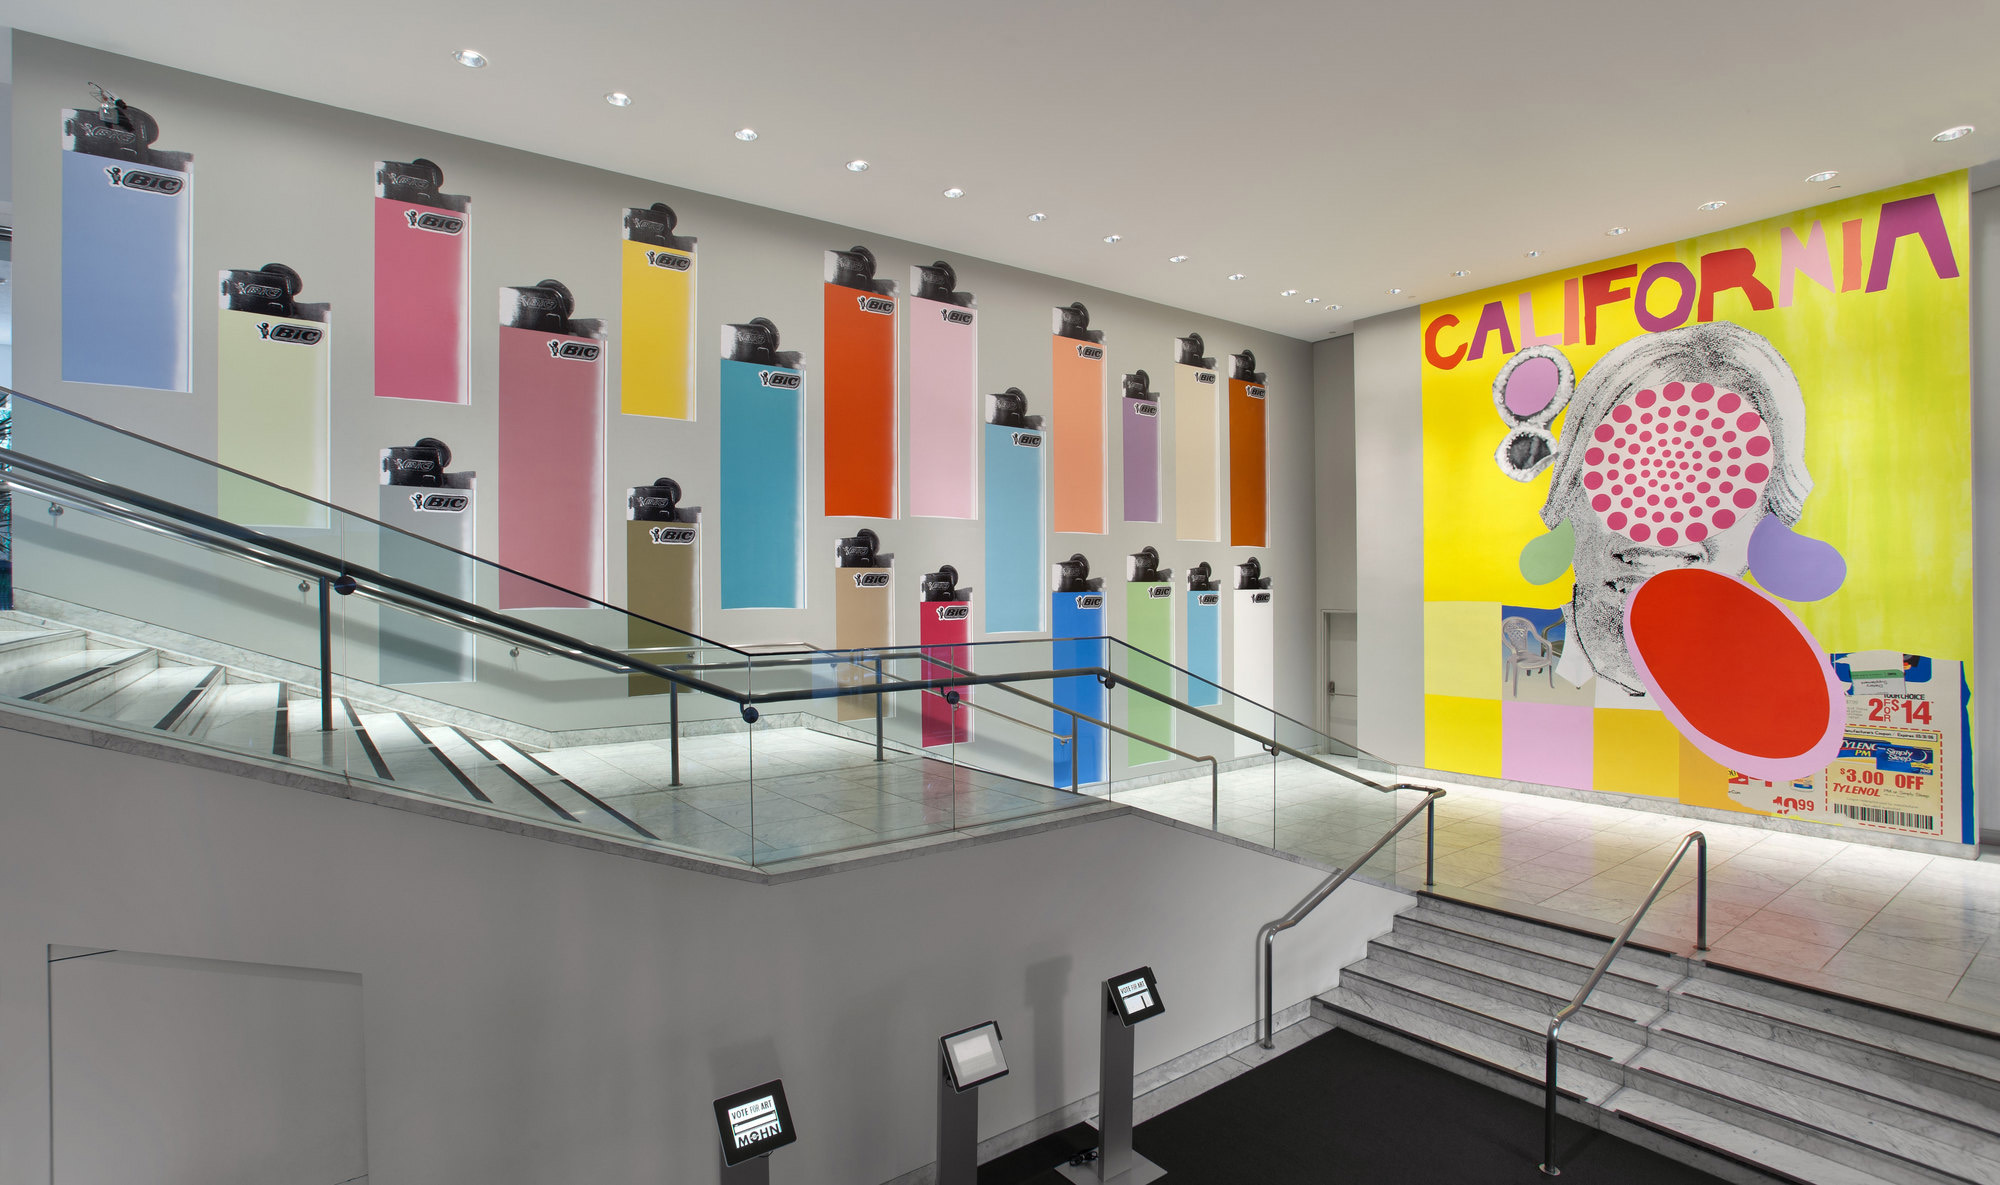 Meg Cranston, <em>Made in L.A. 2012</em> installation view at the Hammer Museum, Los Angeles. Photo by Brian Forrest.